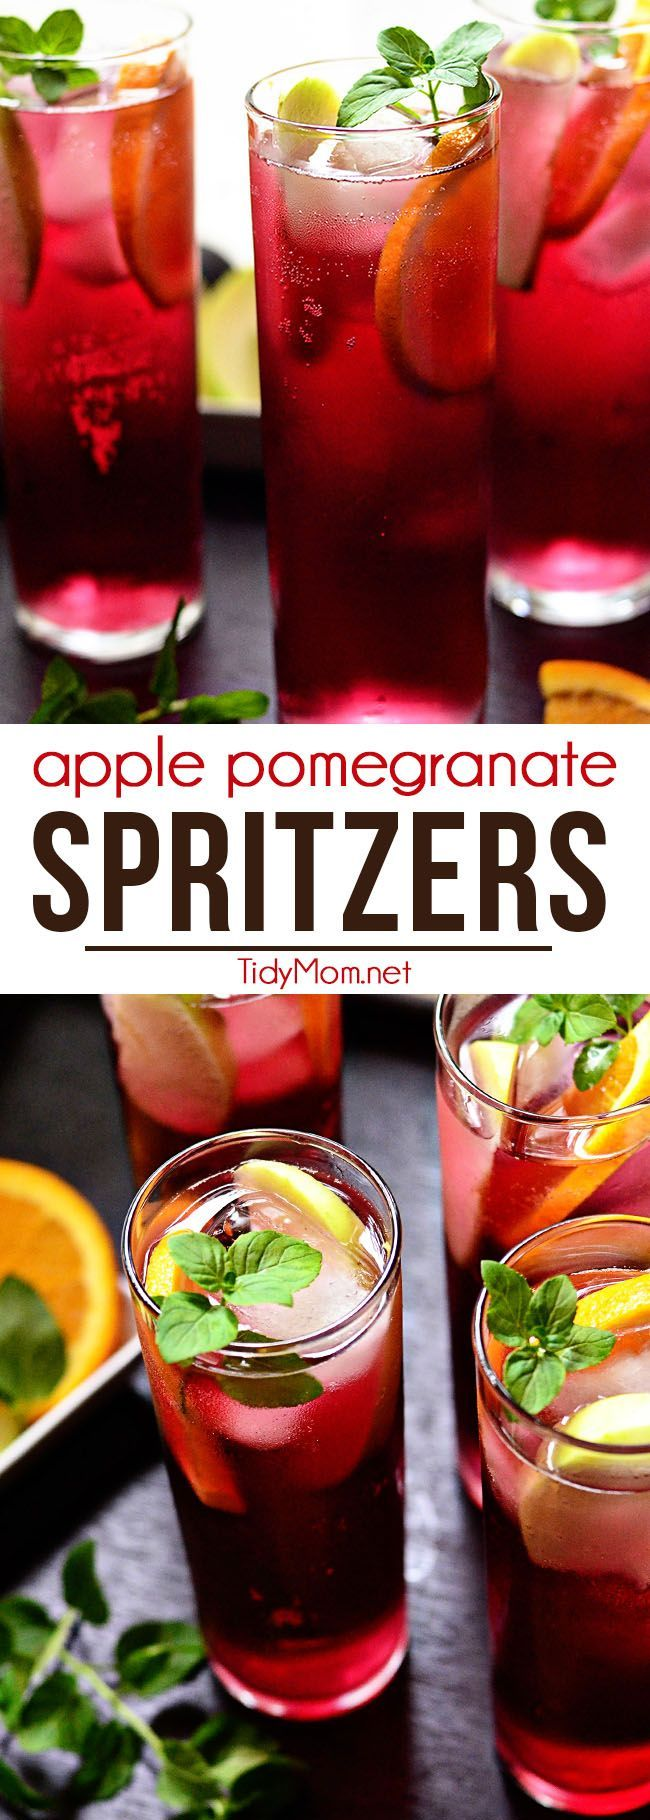 Apple Pomegranate Spritzers are fizzy, fruity and full of antioxidants (hello pomegranate!) and non-alcoholic. You could swap out the lemon-lime soda for white wine if you'd prefer a boozy version. Perfect for any occasion! Print this simple and refreshin